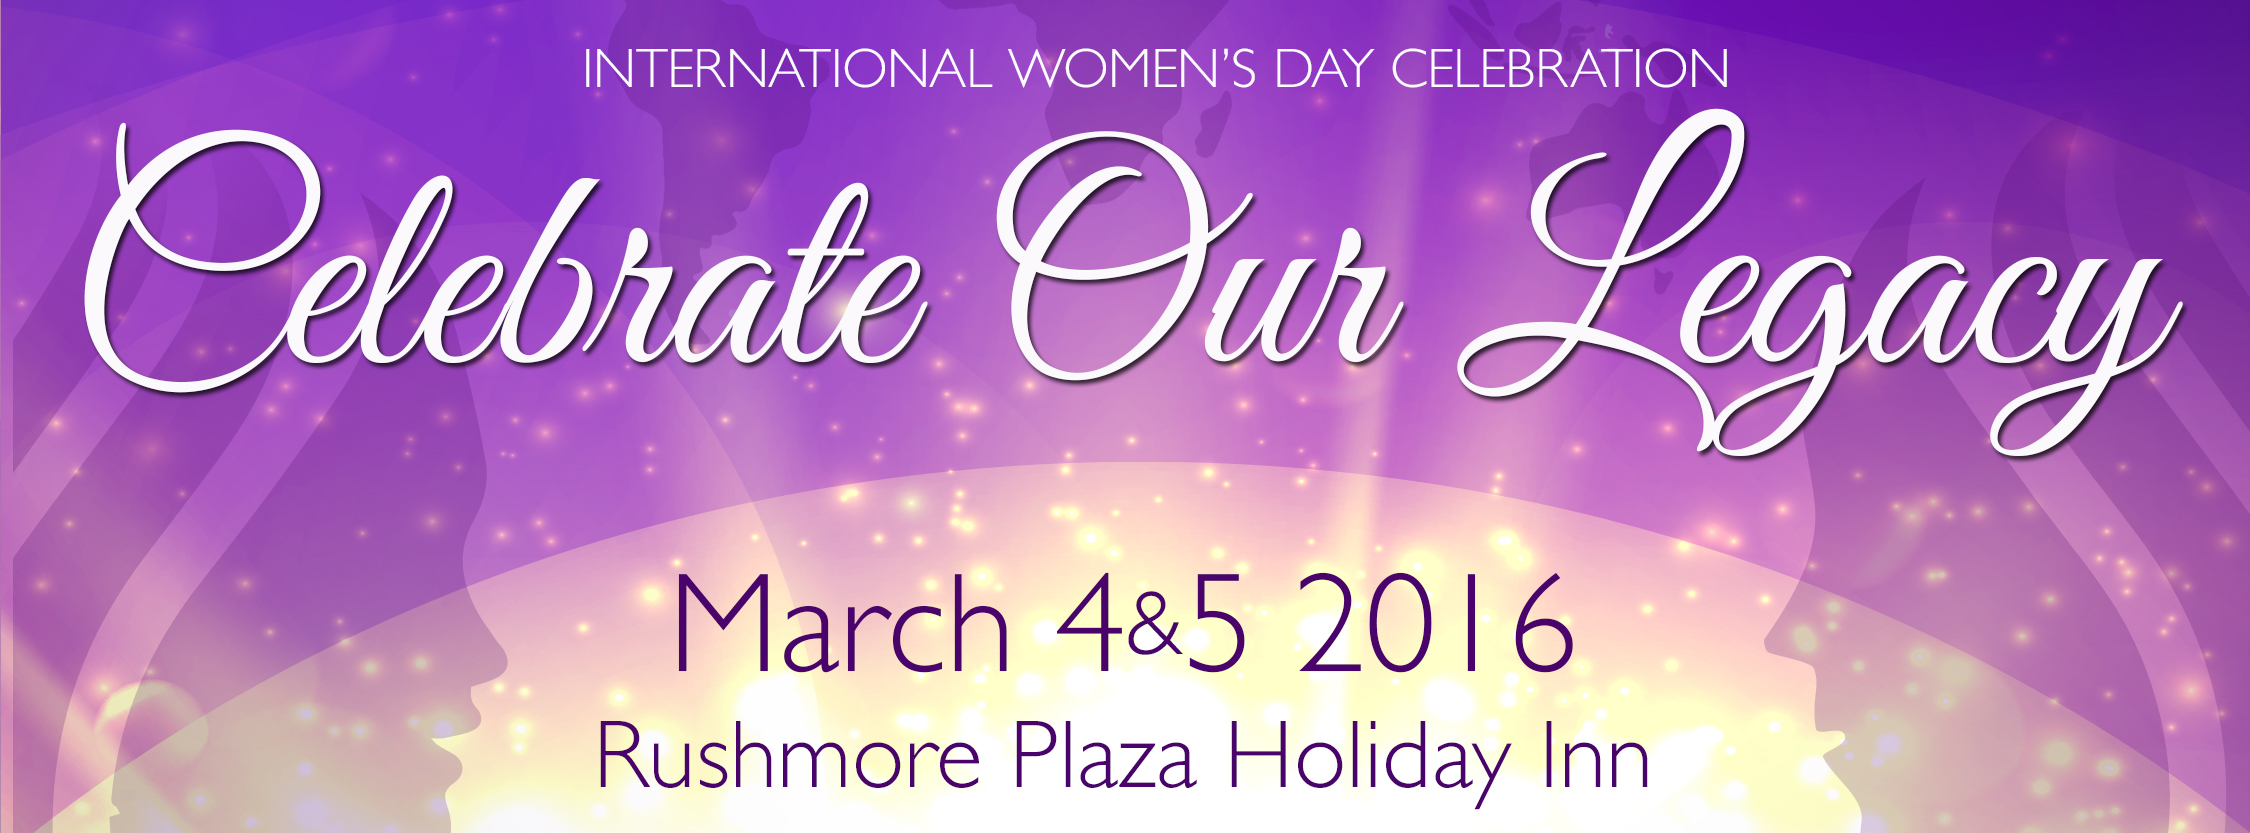 International Women's Day Celebration 2016 - Celebrate Our Legacy